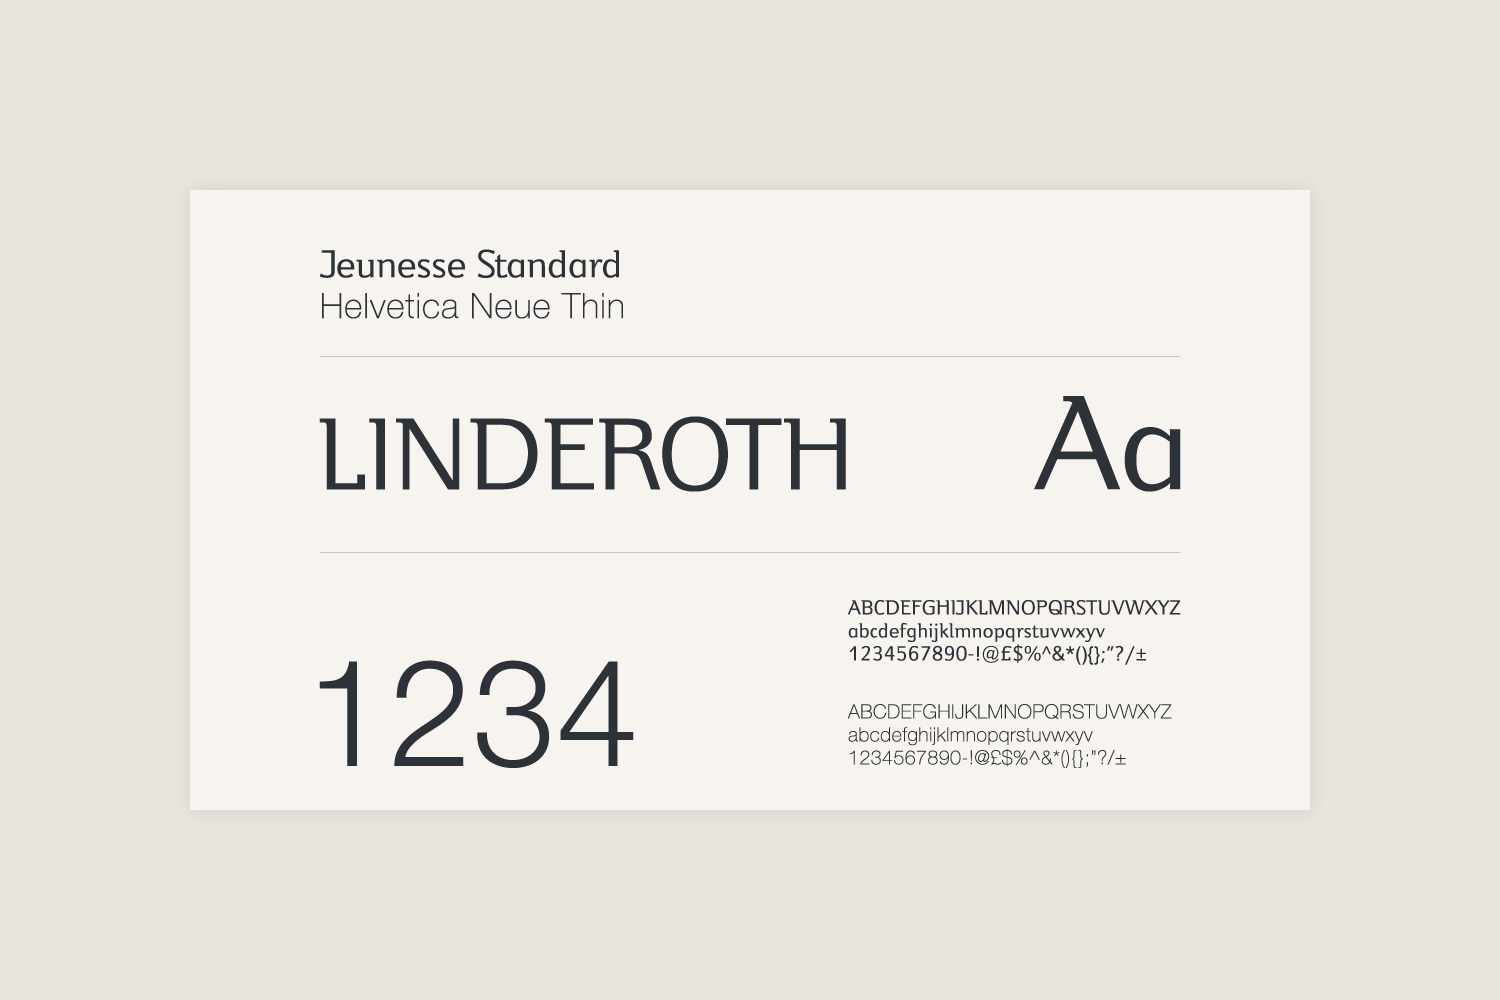 Branding and typography design for Linderoth Jewellery.